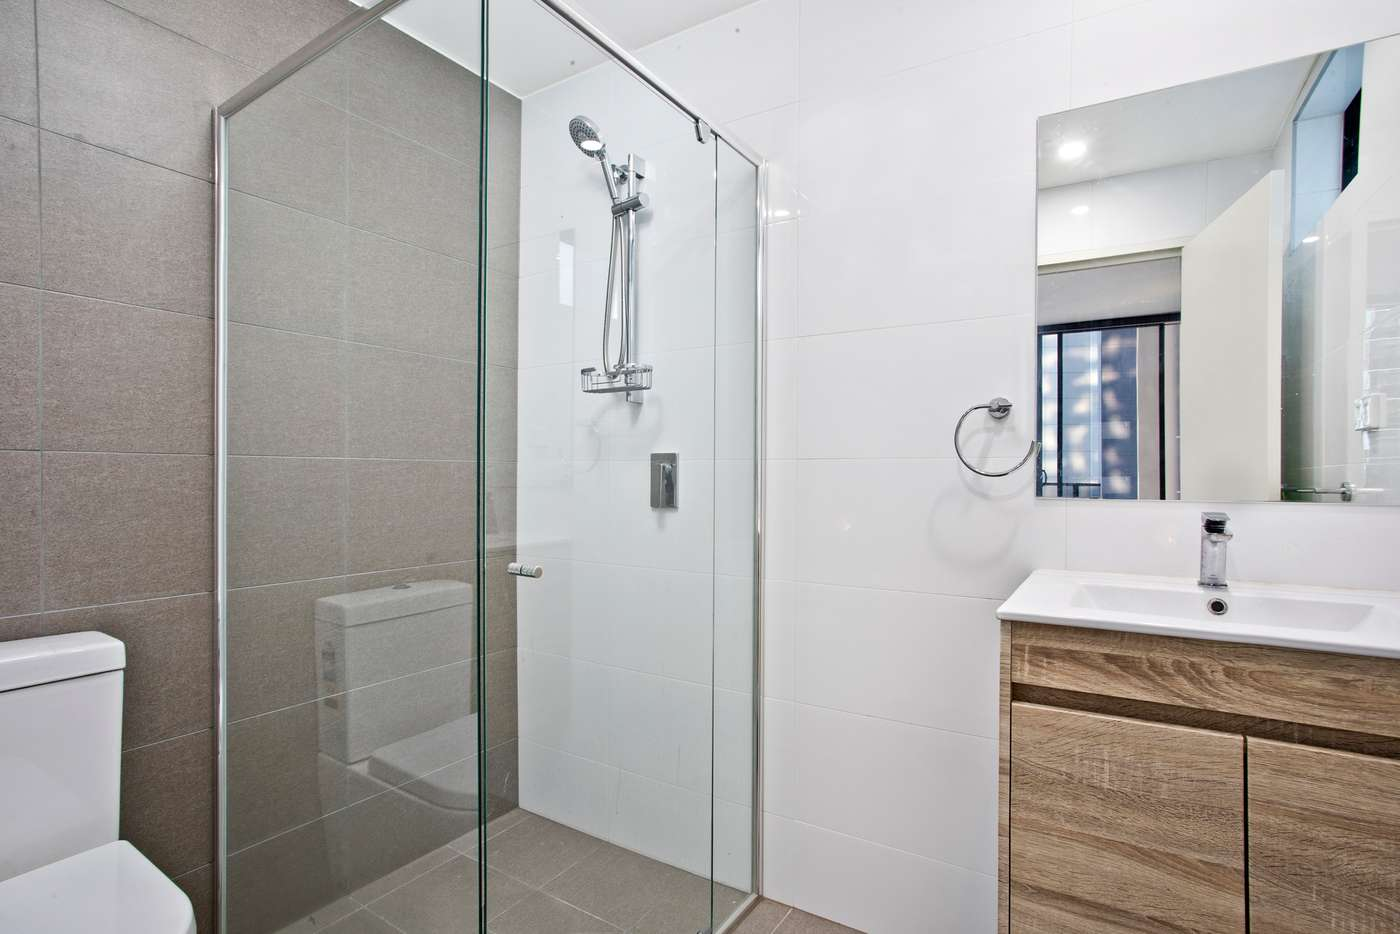 Sixth view of Homely apartment listing, 501/11 Hassall Street, Parramatta NSW 2150